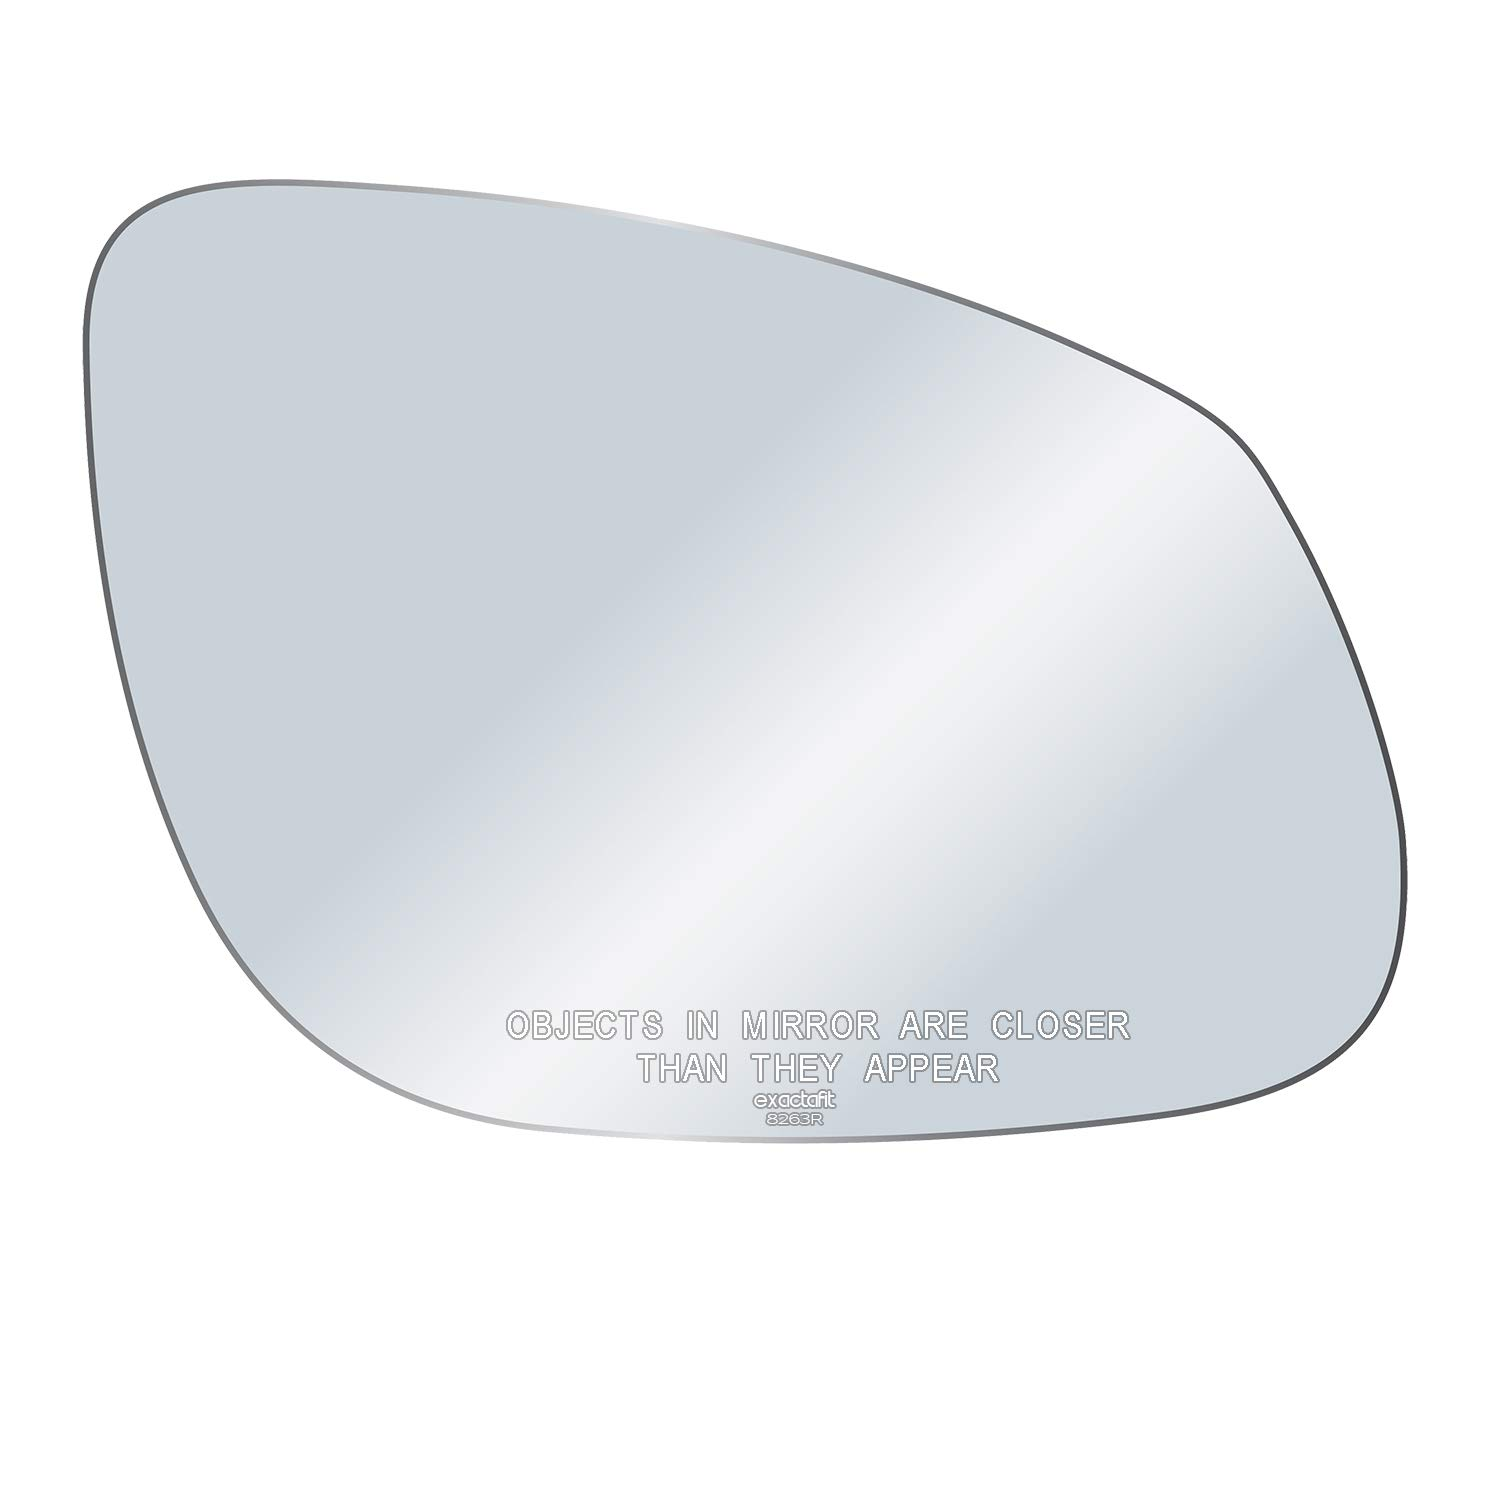 exactafit 8263R Passenger Right Side Mirror Replacement Glass Fits 2003-2006 Porsche Cayenne NON-Auto Dim ONLY by Rugged TUFF